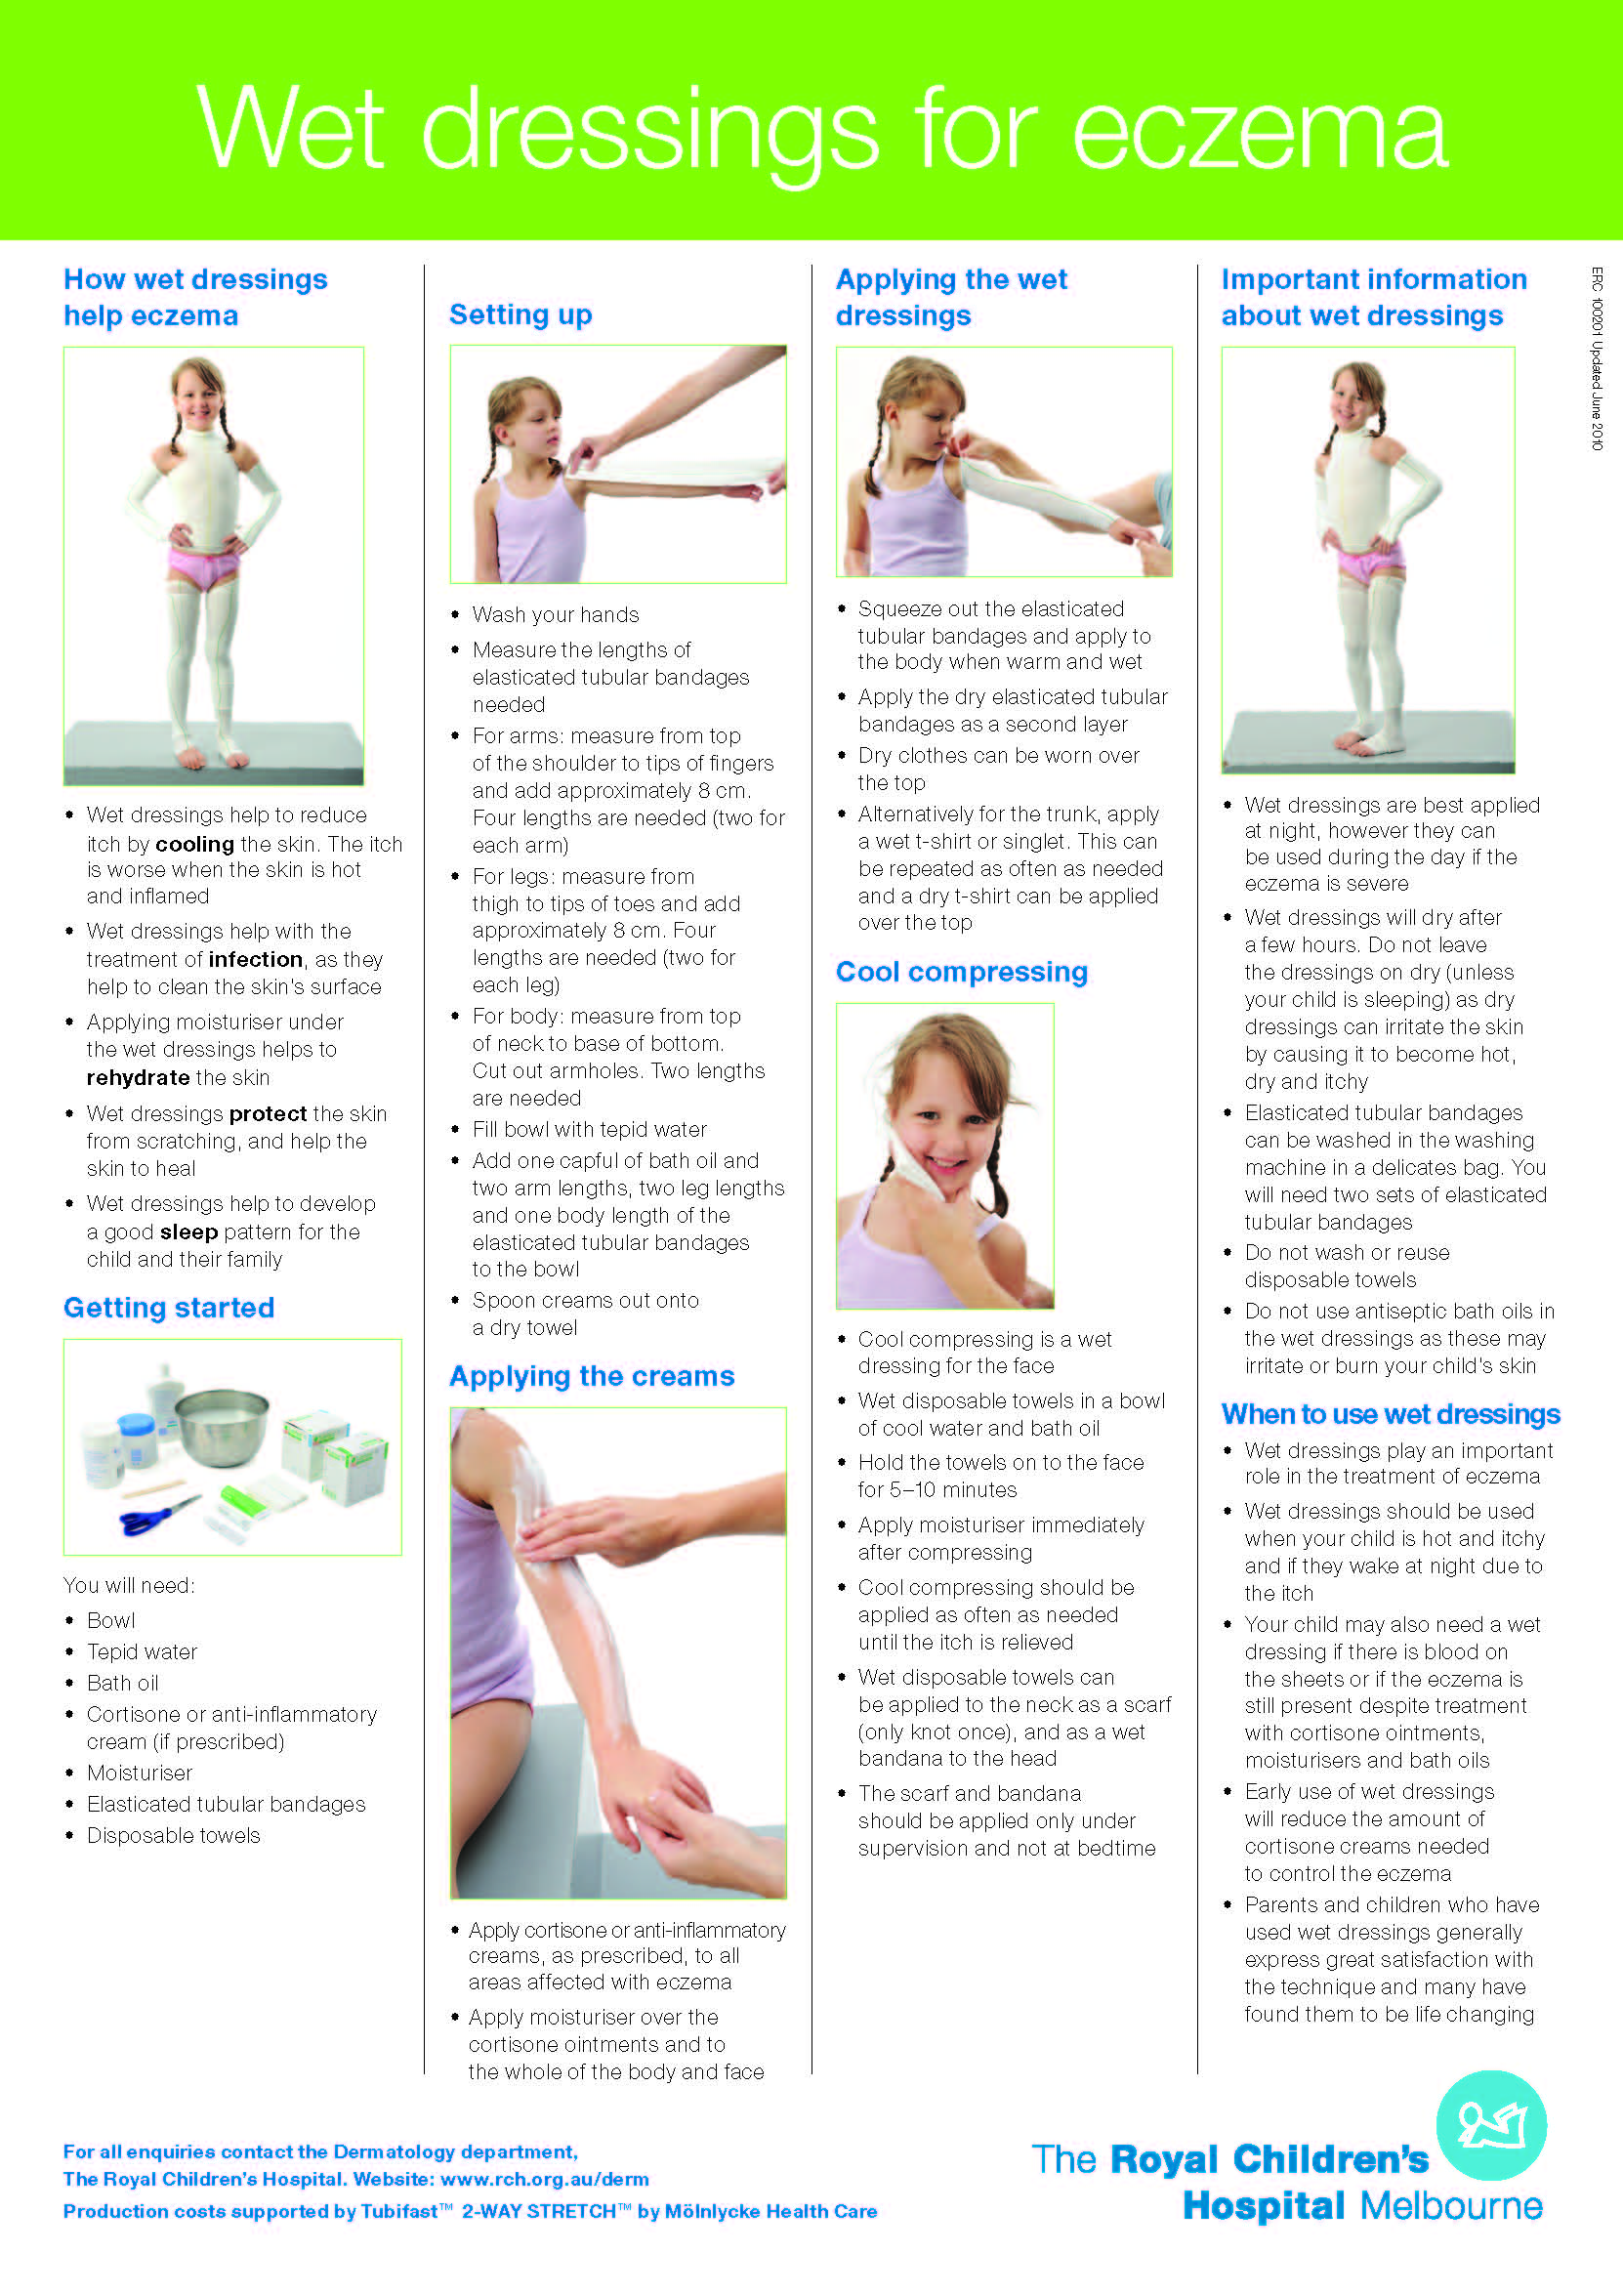 The right choices about using wet wraps to treat your child s eczema